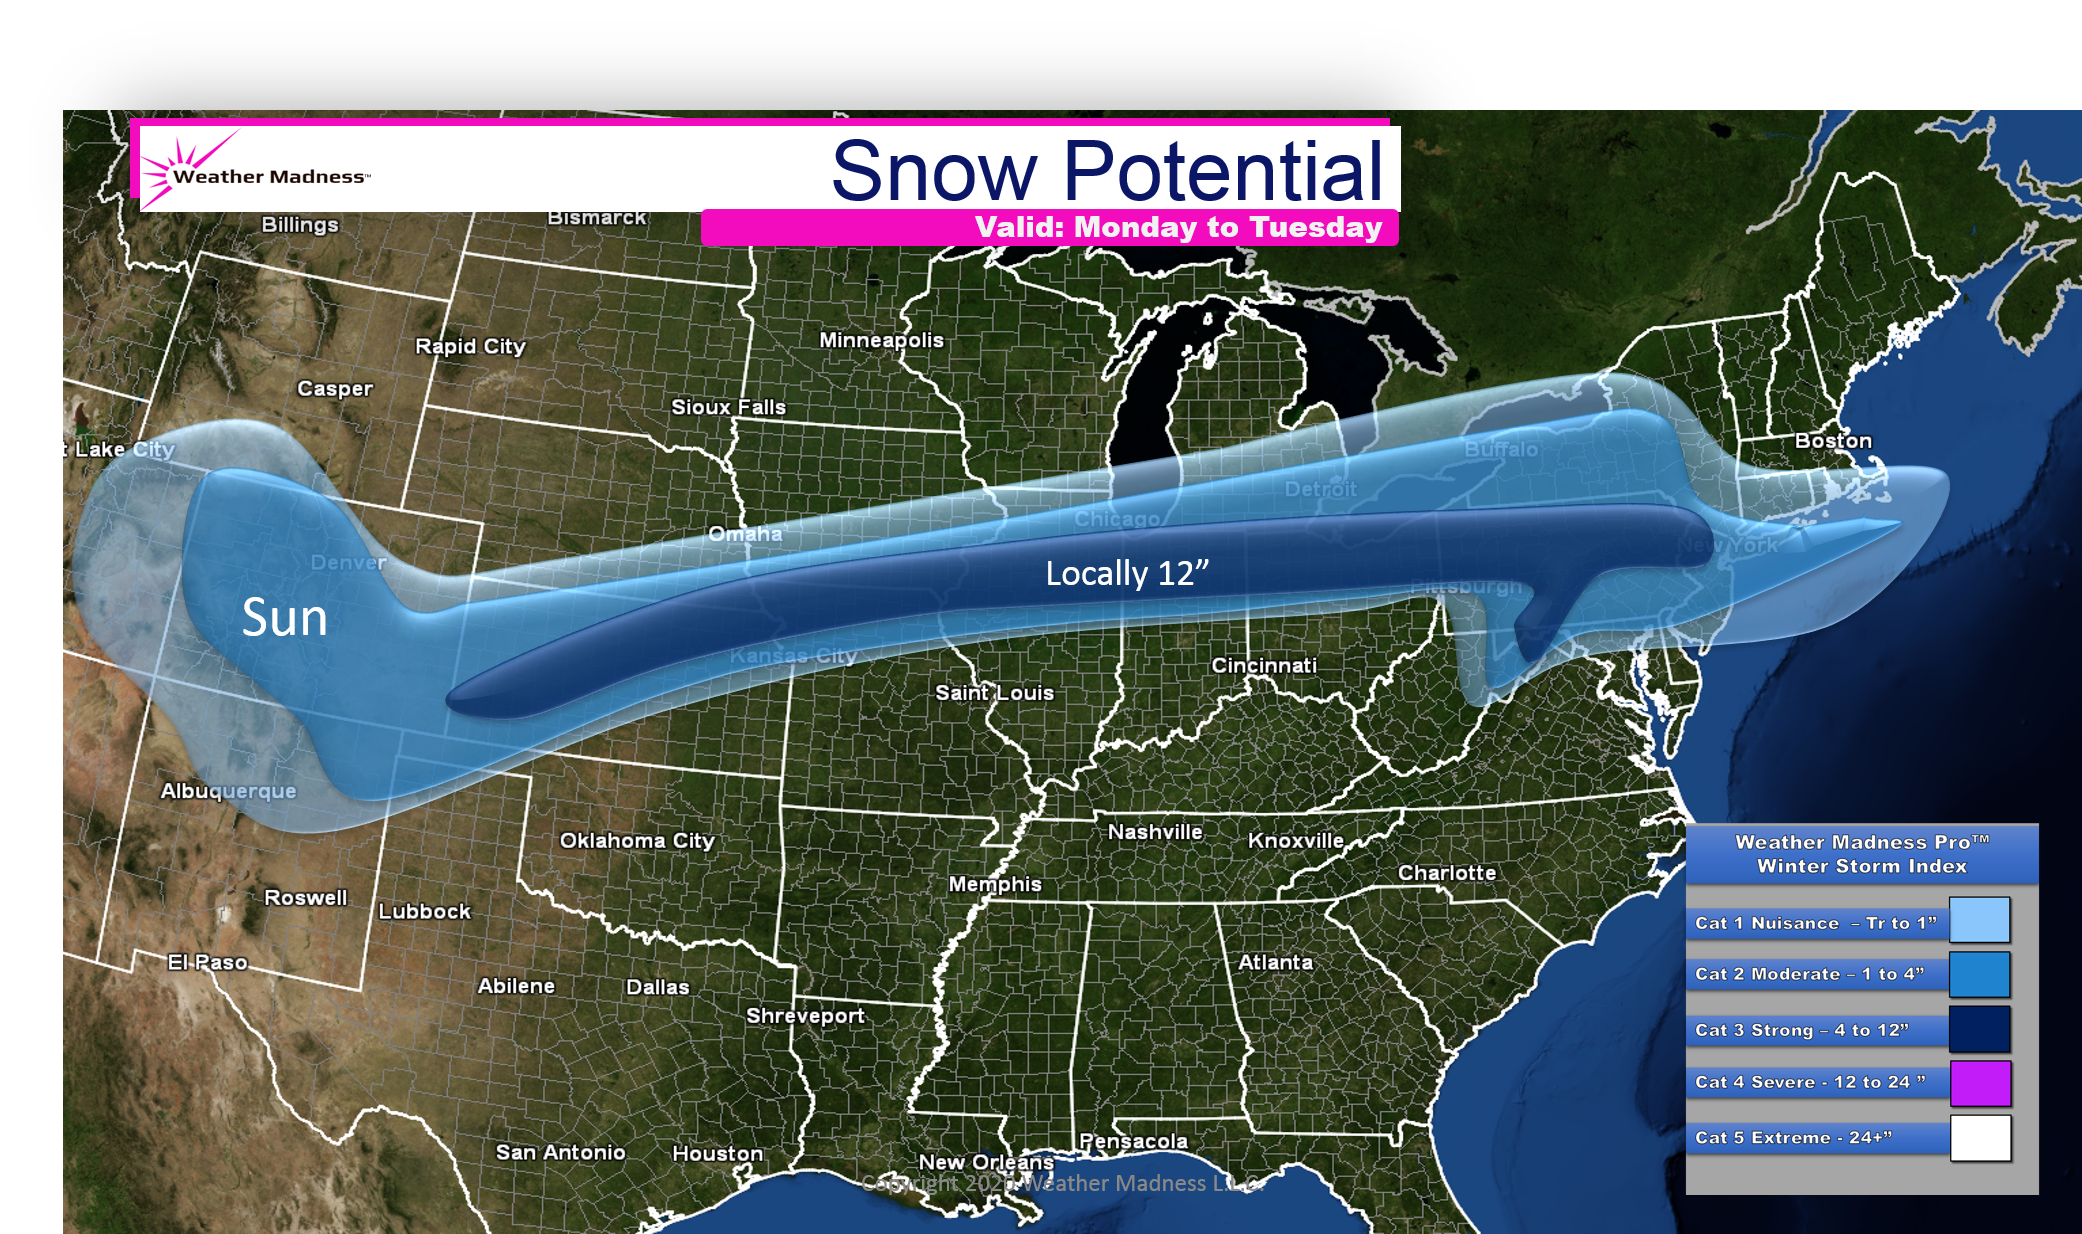 Snow Map for the Snowstorm Monday and Tuesday